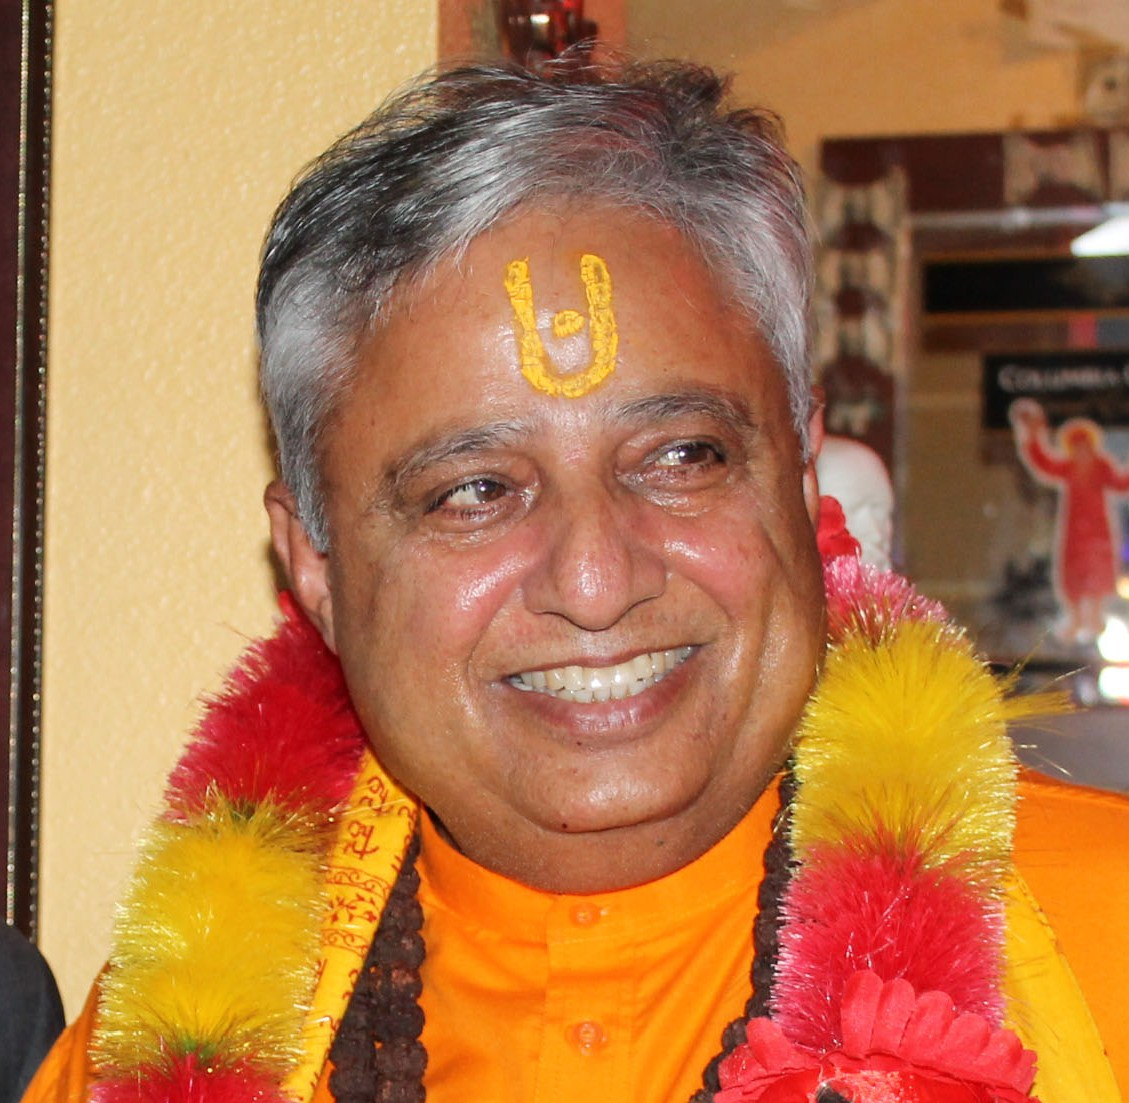 Hindu mantras be chanted to open both New Mexico Senate & House on February 7